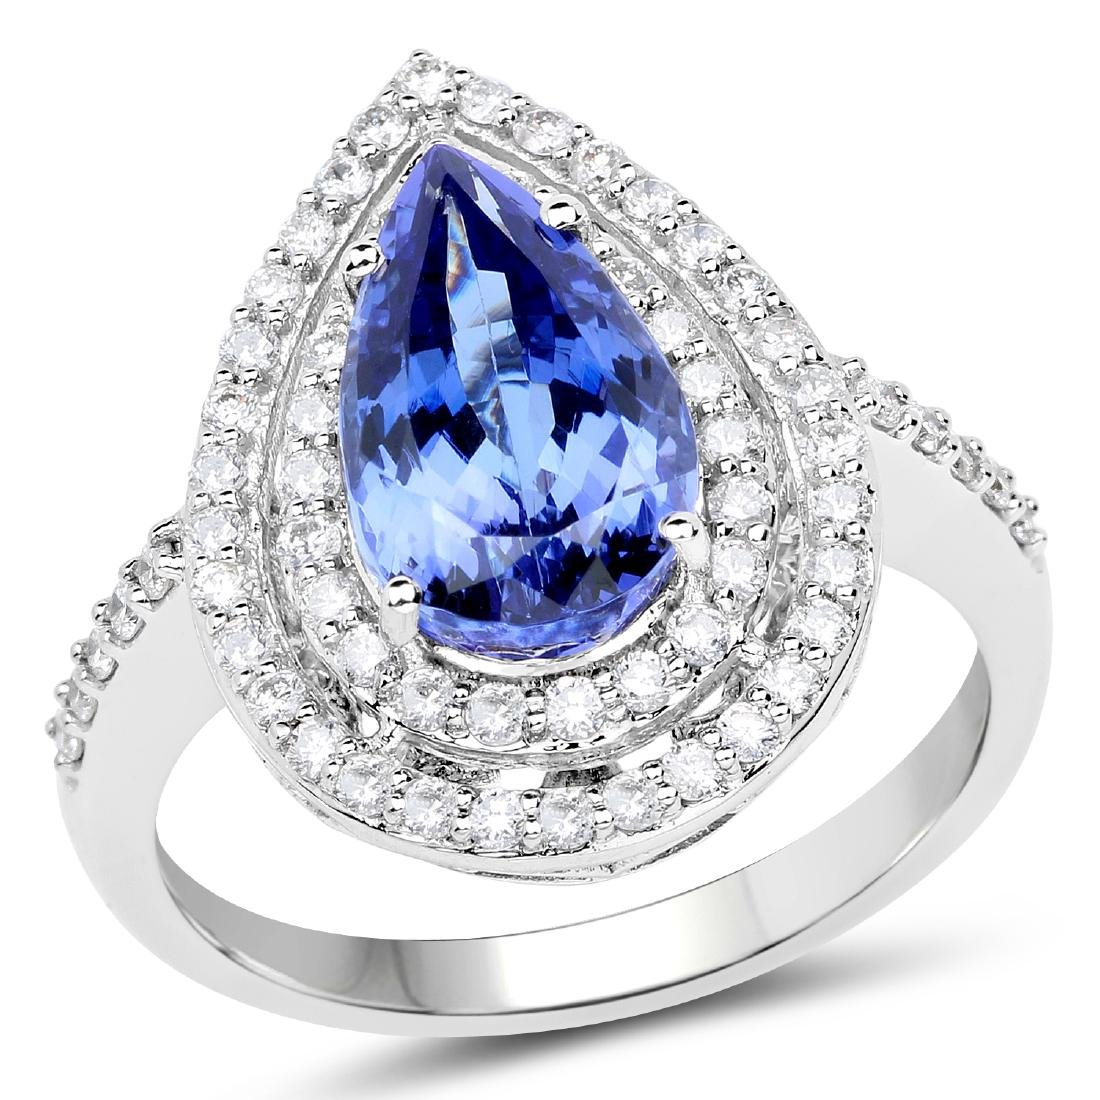 *14 kt. White Gold, 3.32CT Pear Cut Tanzanite And